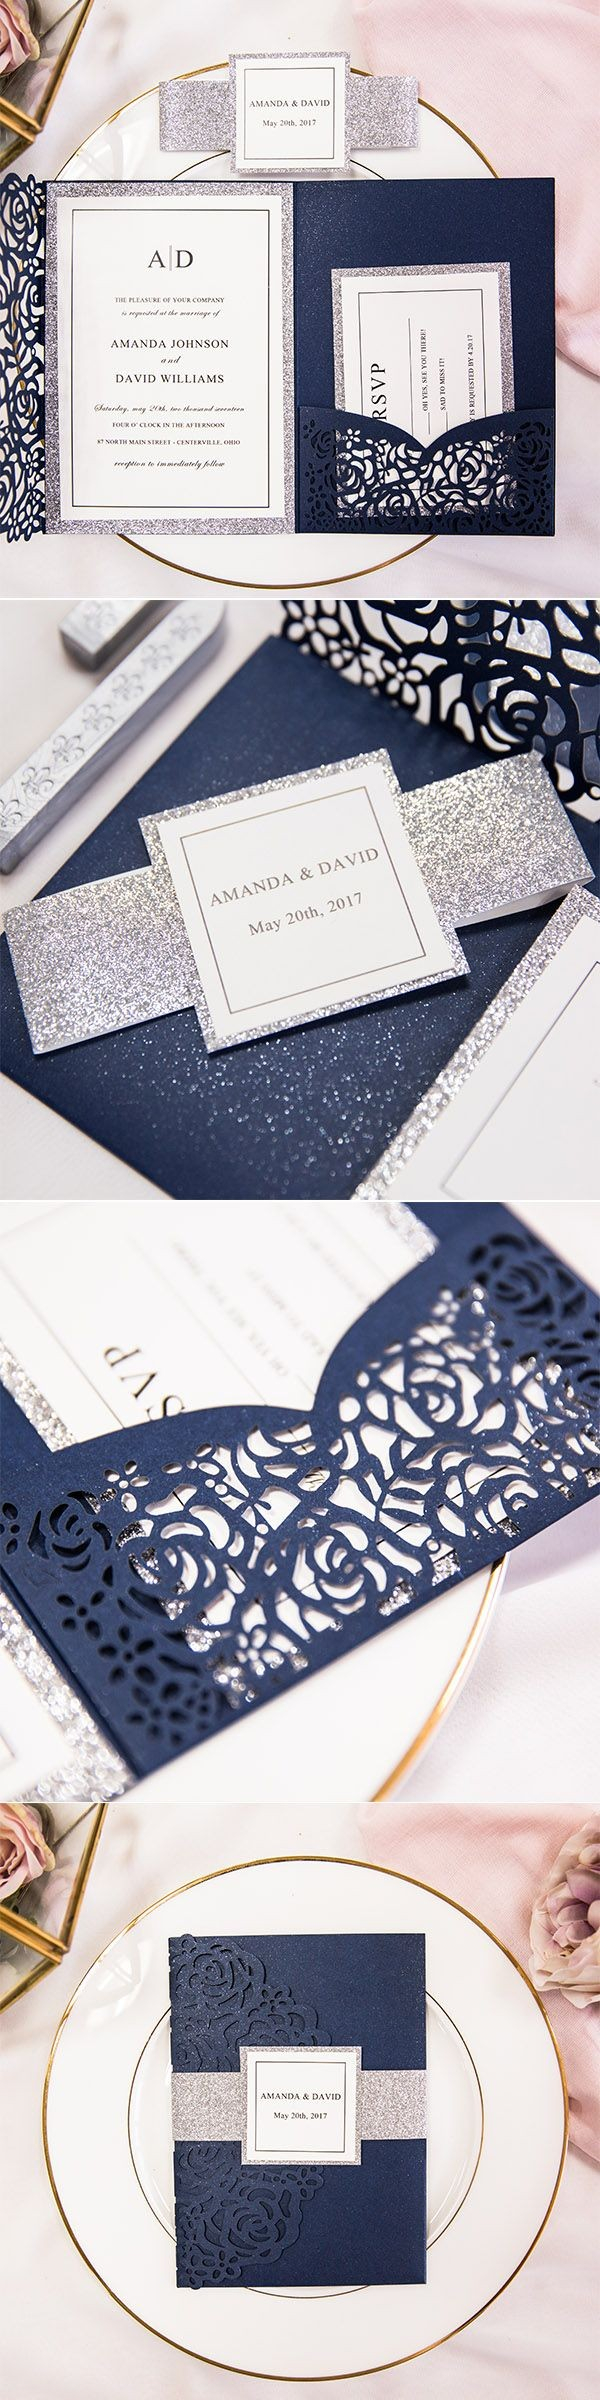 Blue And Silver Wedding Invitations Blue And Silver Wedding Invitations Unique Wedding Invitations